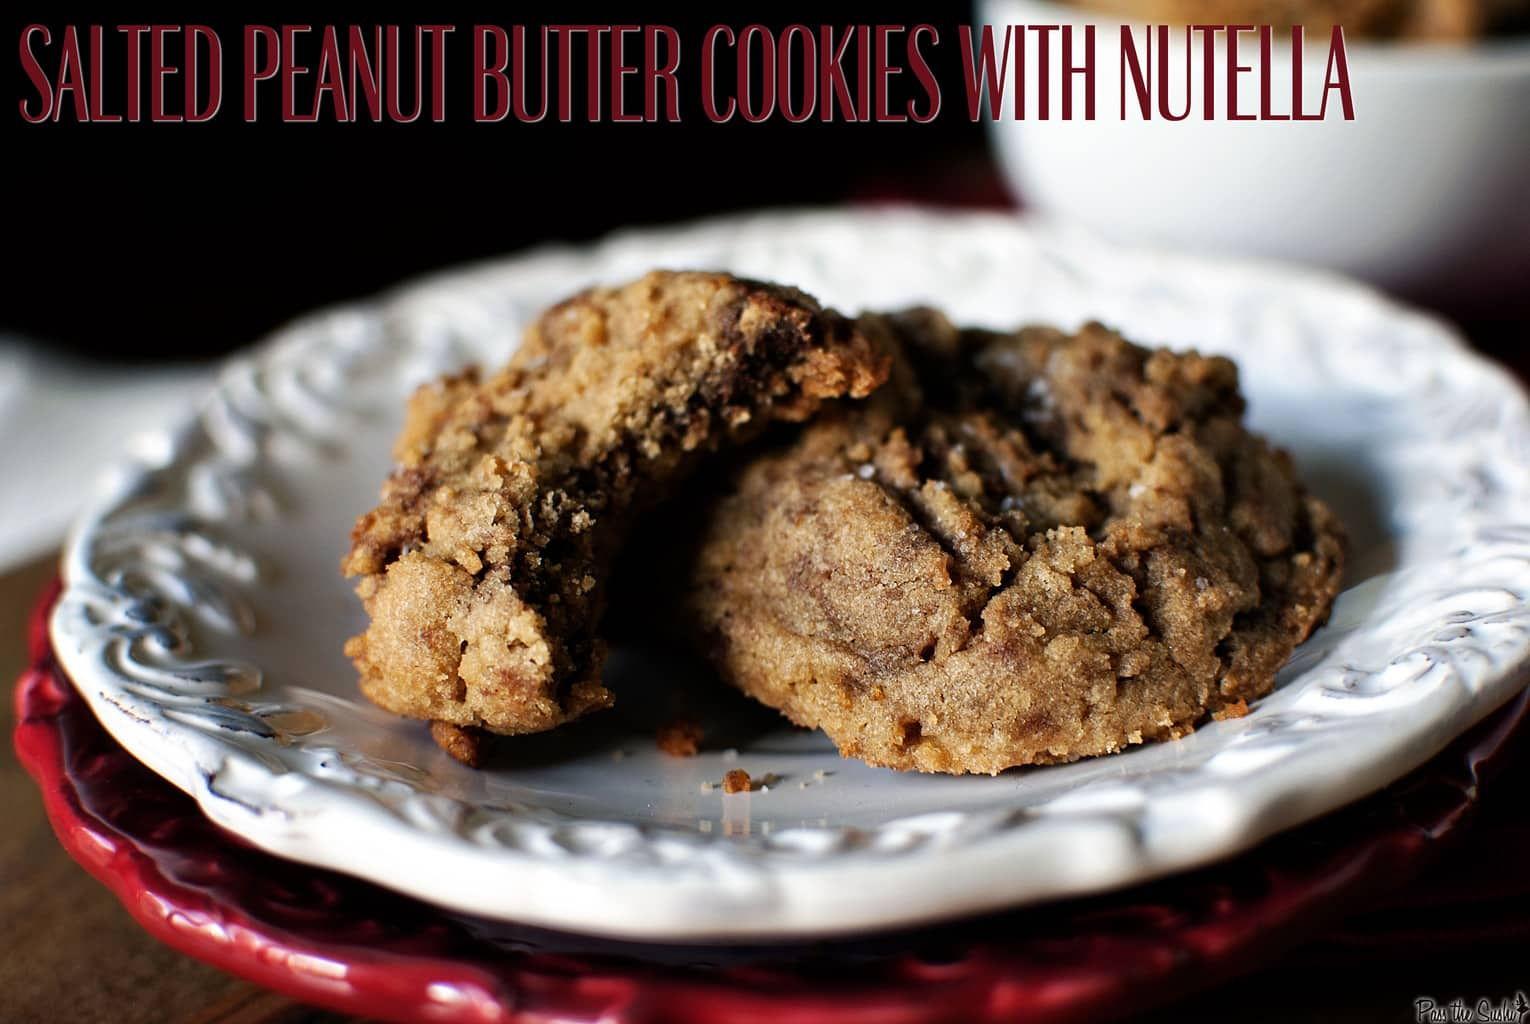 Salted peanut butter Nutella cookies will capture your heart with their chewy, chocolate-hazelnut goodness, accented with salted peanut butter. \\ PassTheSushi.com